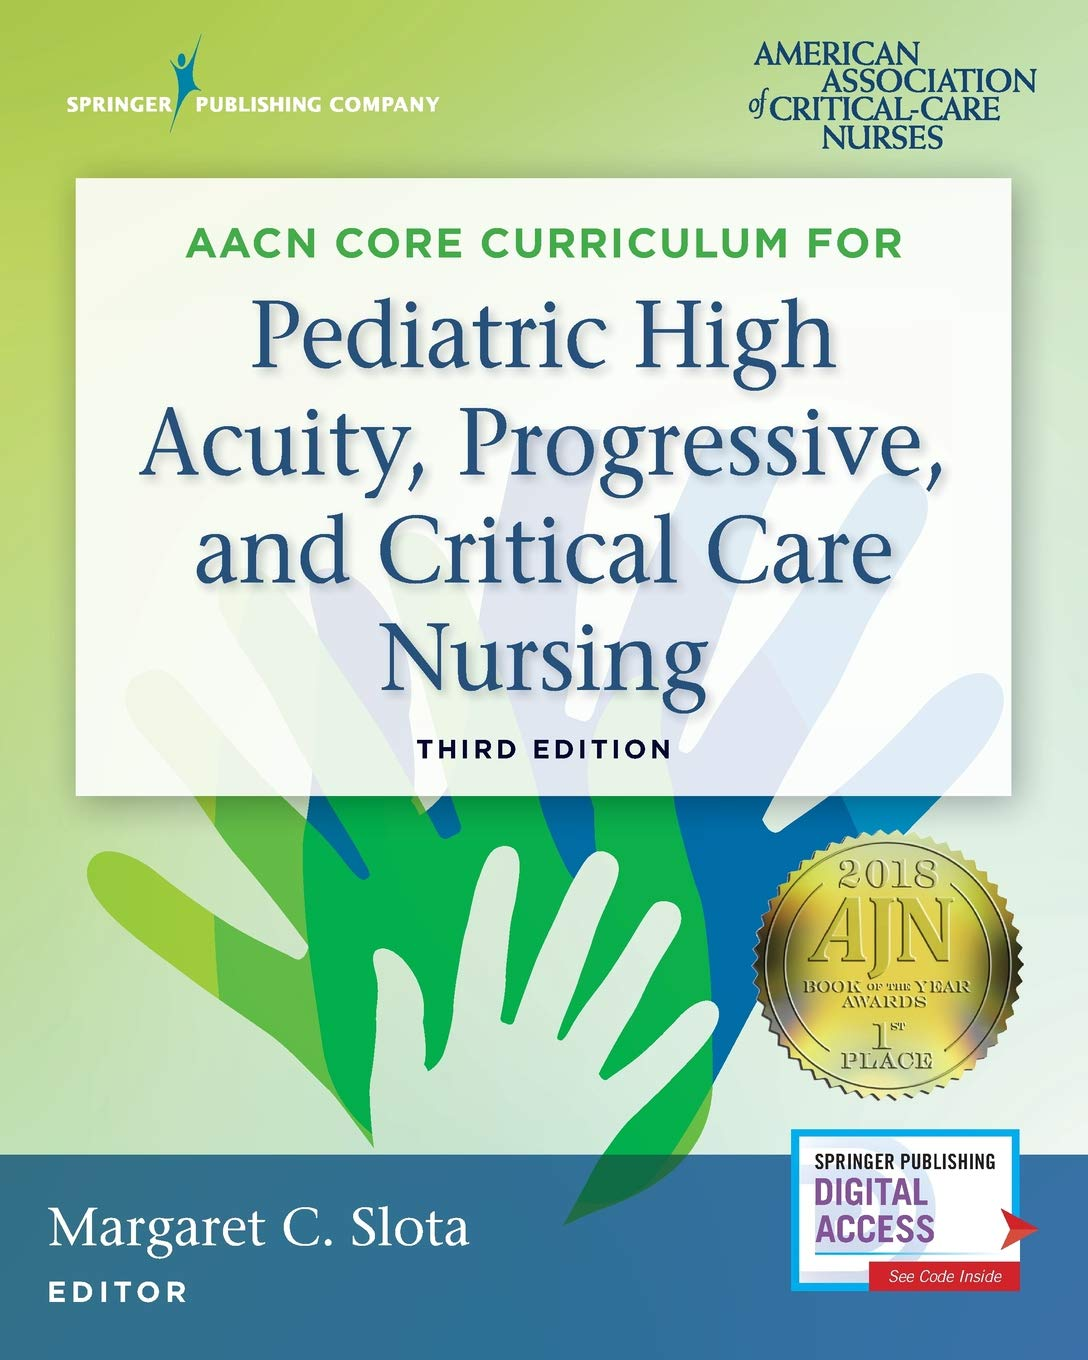 AACN Core Curriculum for Pediatric High Acuity, Progressive, and Critical Care Nursing, Third Edition by Springer Publishing Company